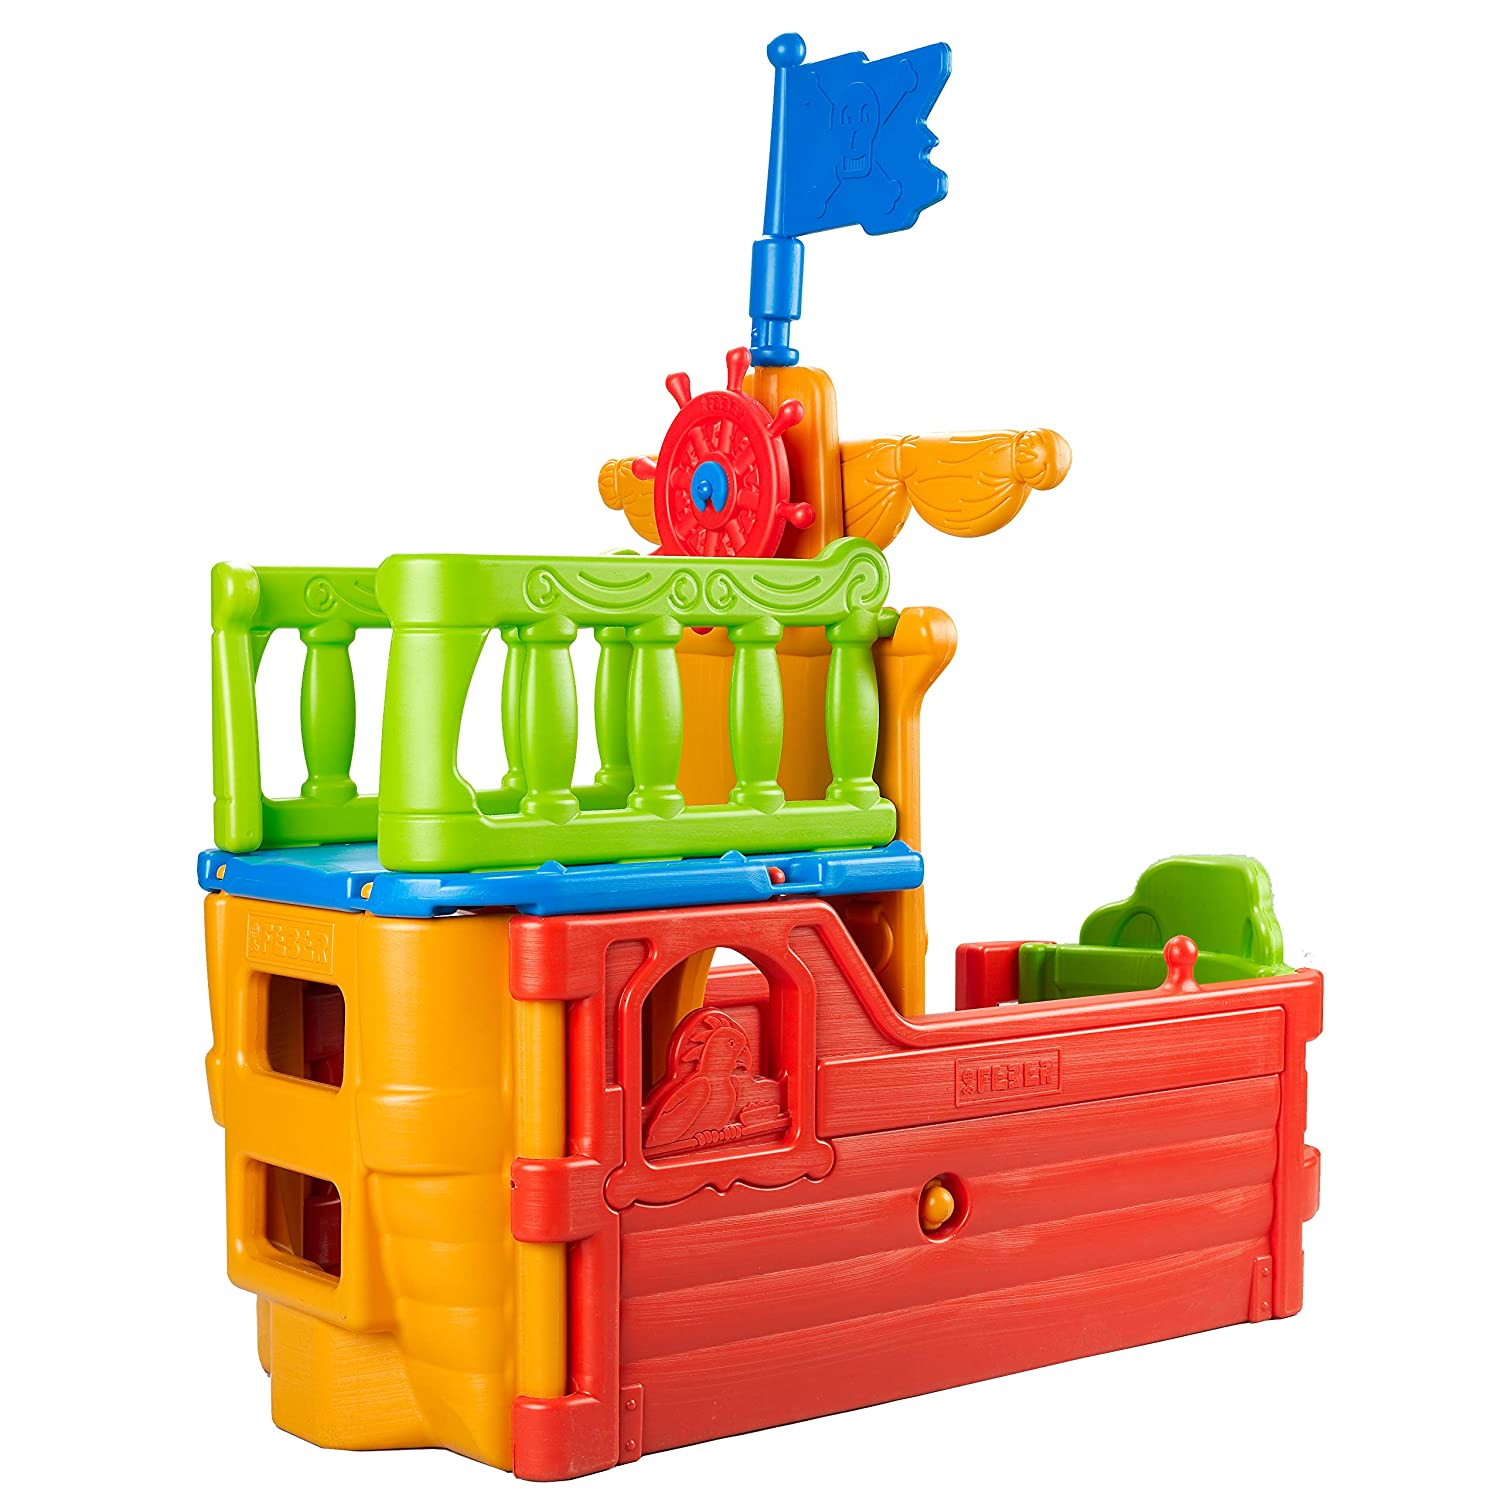 11 Best Outdoor Playsets for Toddlers Reviews of 2021 21